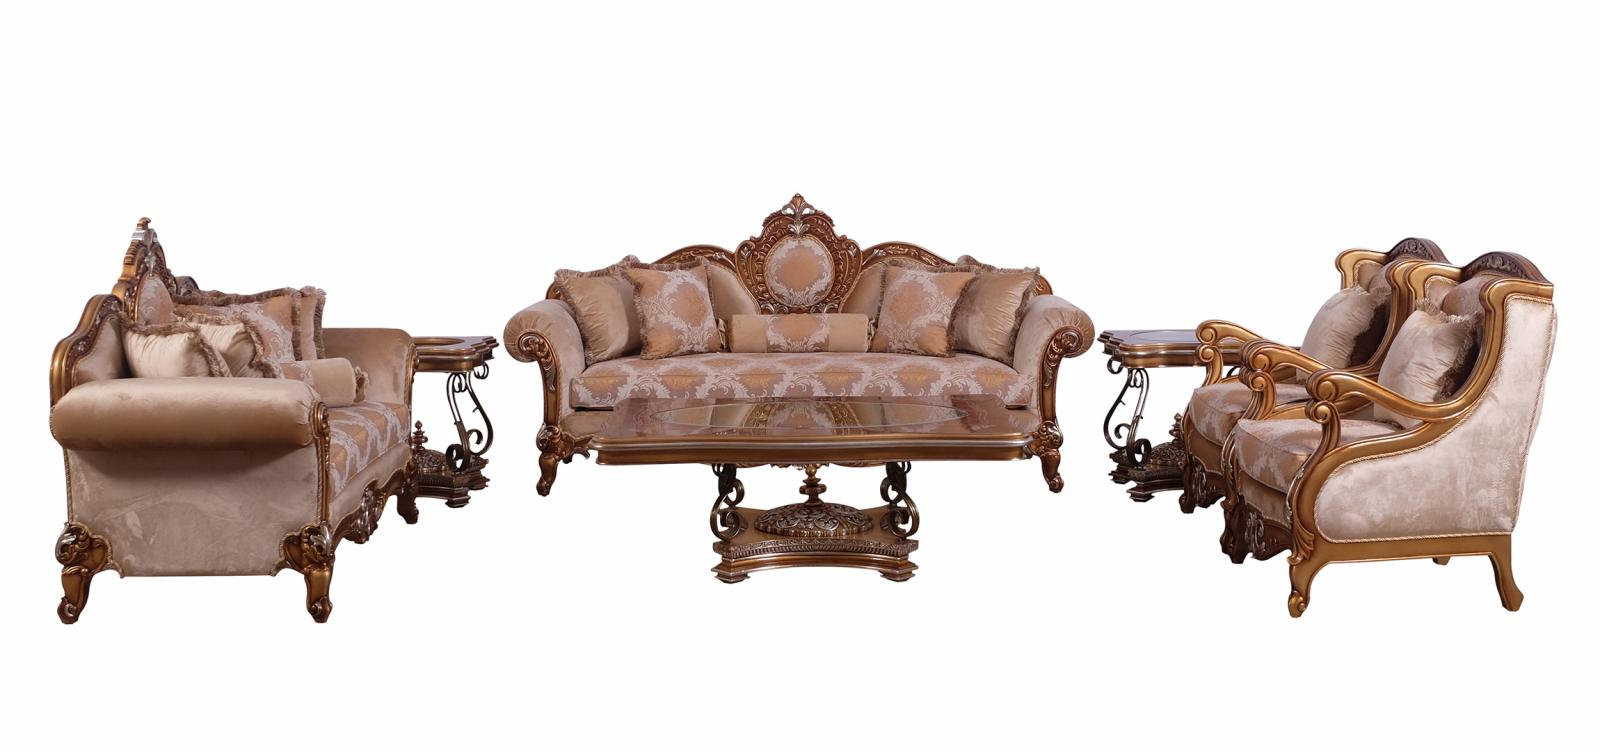 Classic  Traditional Brown  Gold  Silver Wood  Solid Hardwood and Fabric Sofa Set EUROPEAN FURNITURE 41026-S-Set-4